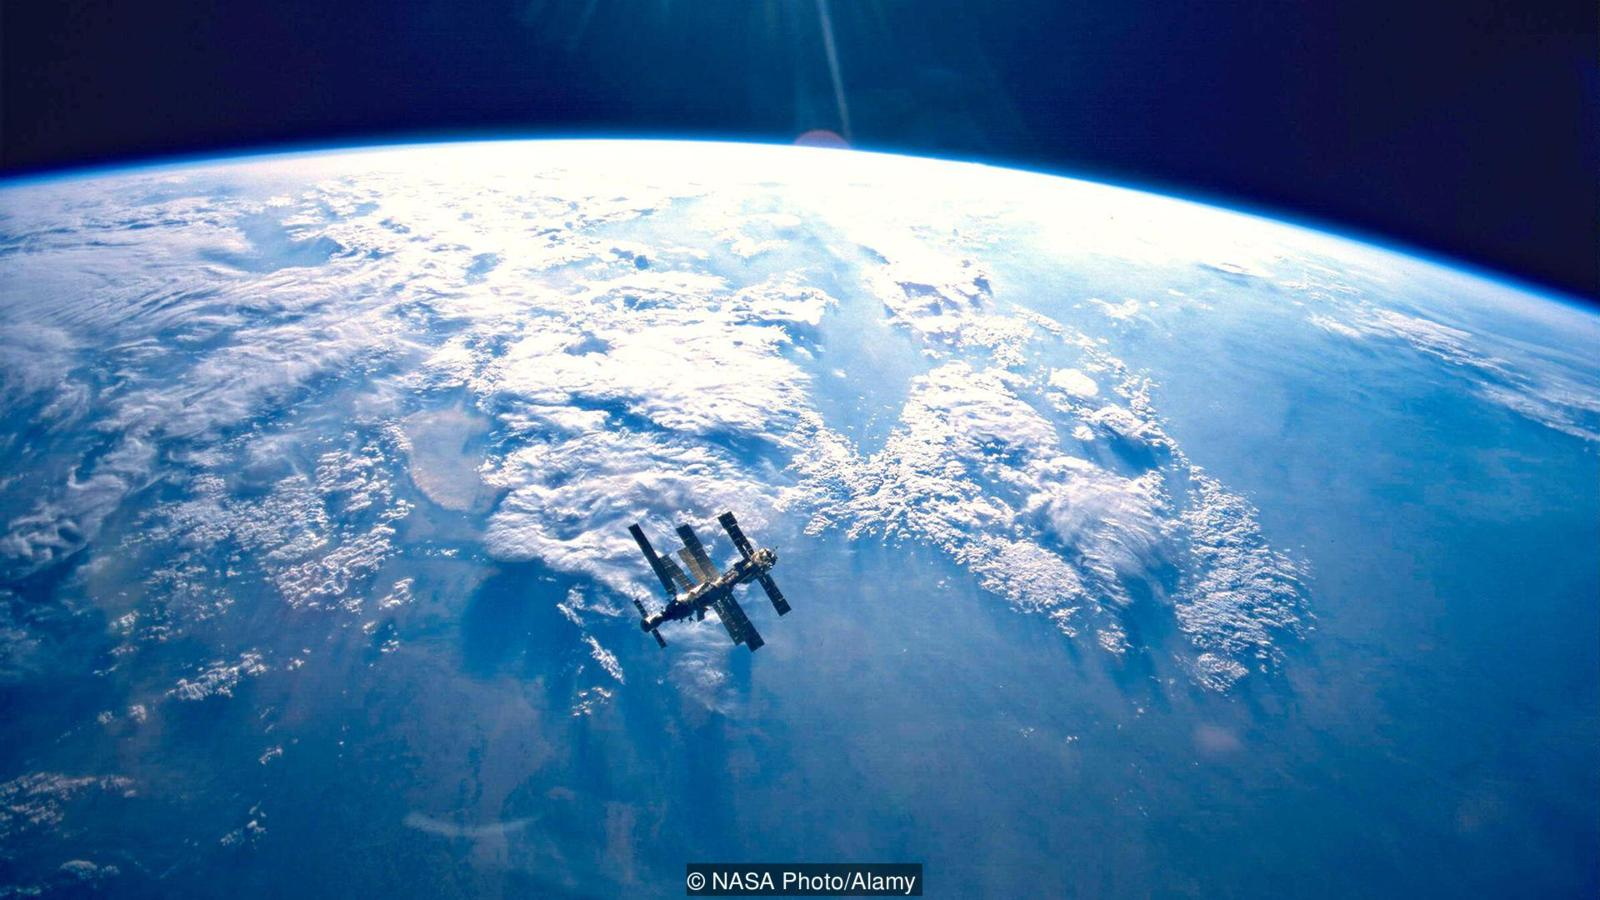 La station Mir avant son crash dans le Pacifique - Crédits photo : NASA Photo/Alamy